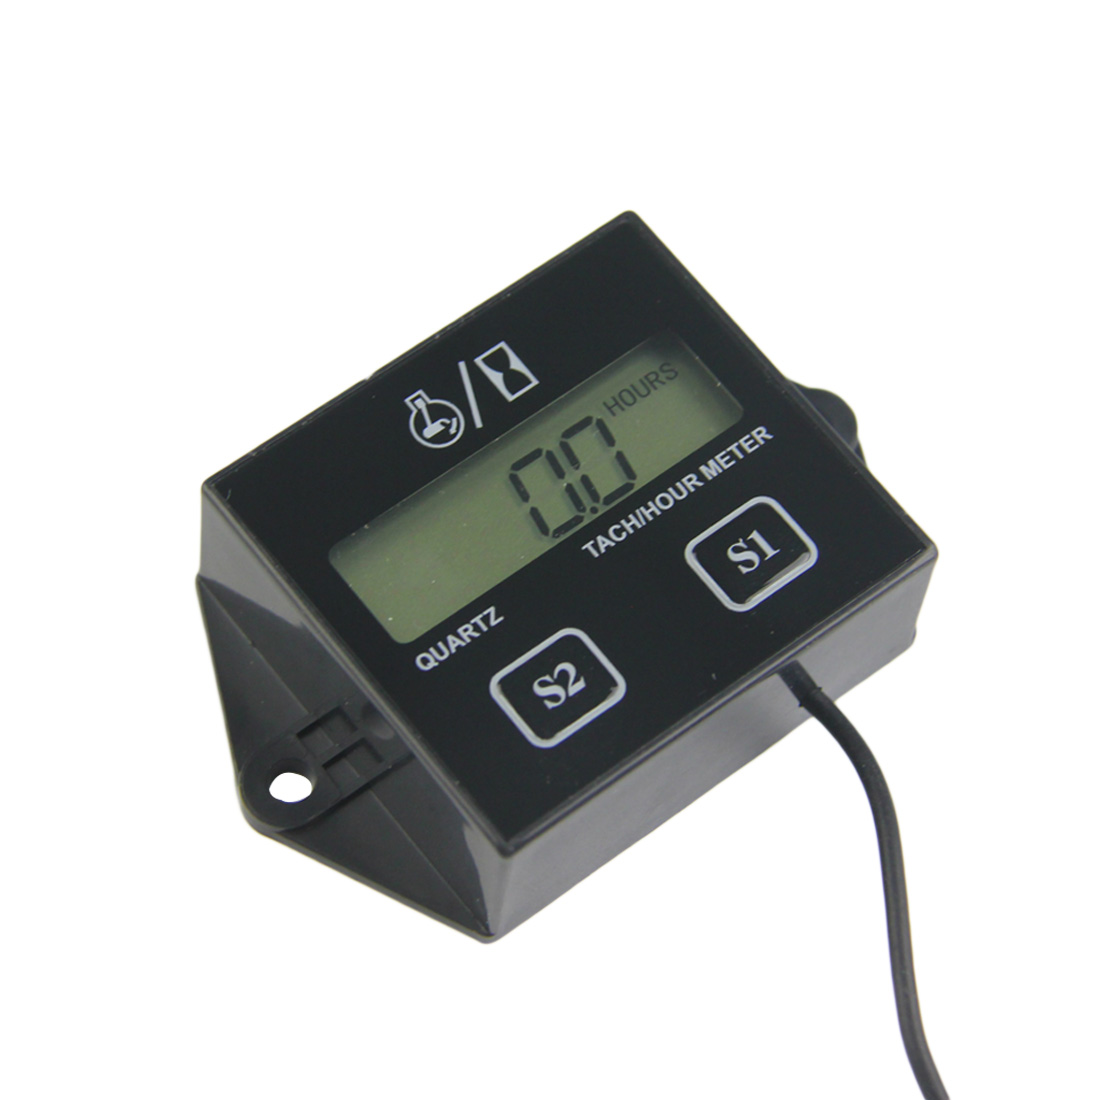 Tech Hour Meter Digital Engine Tachometer Gauge Inductive For Motorcycle Motor Stroke Engine Spark